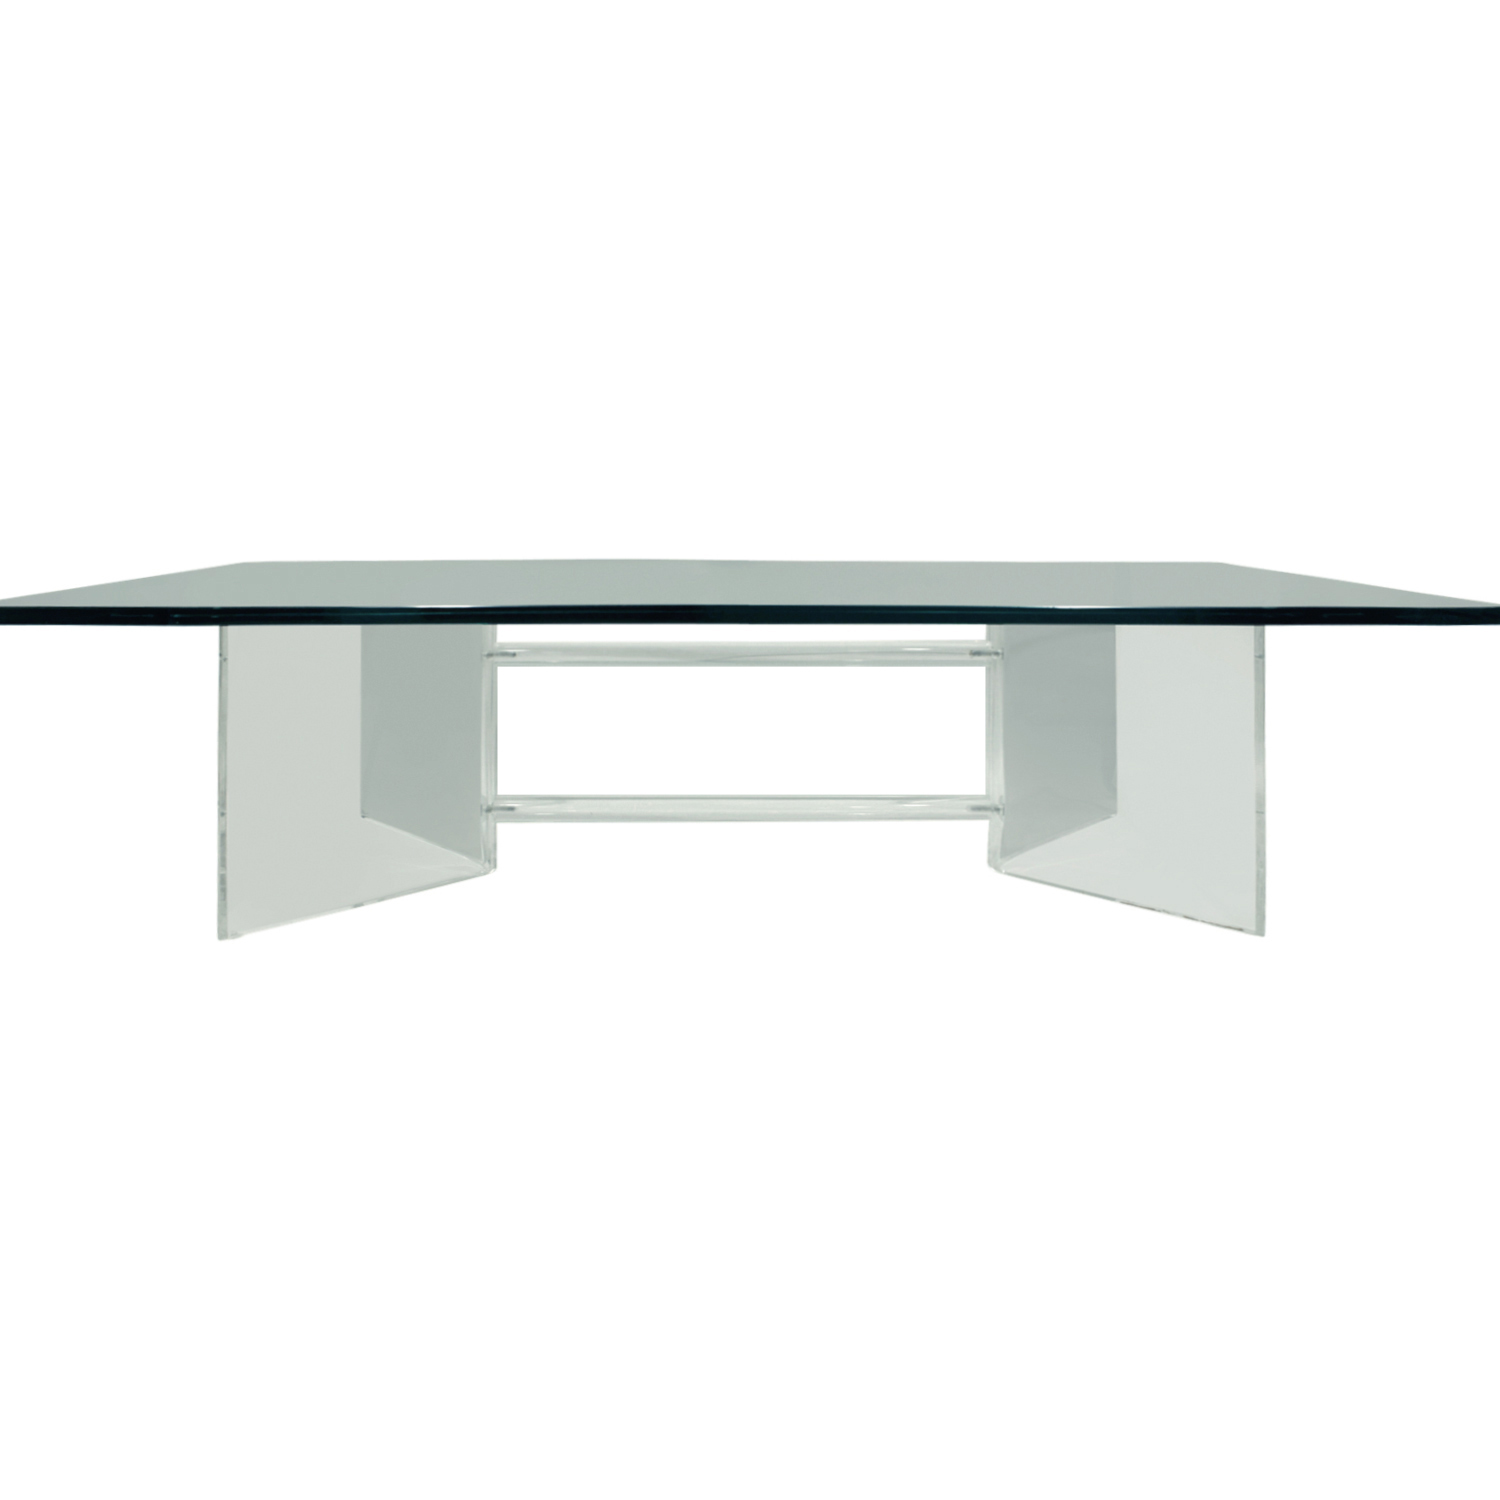 l70s 65 rect lucite rod stretchers coffeetable417 dtl1.jpg